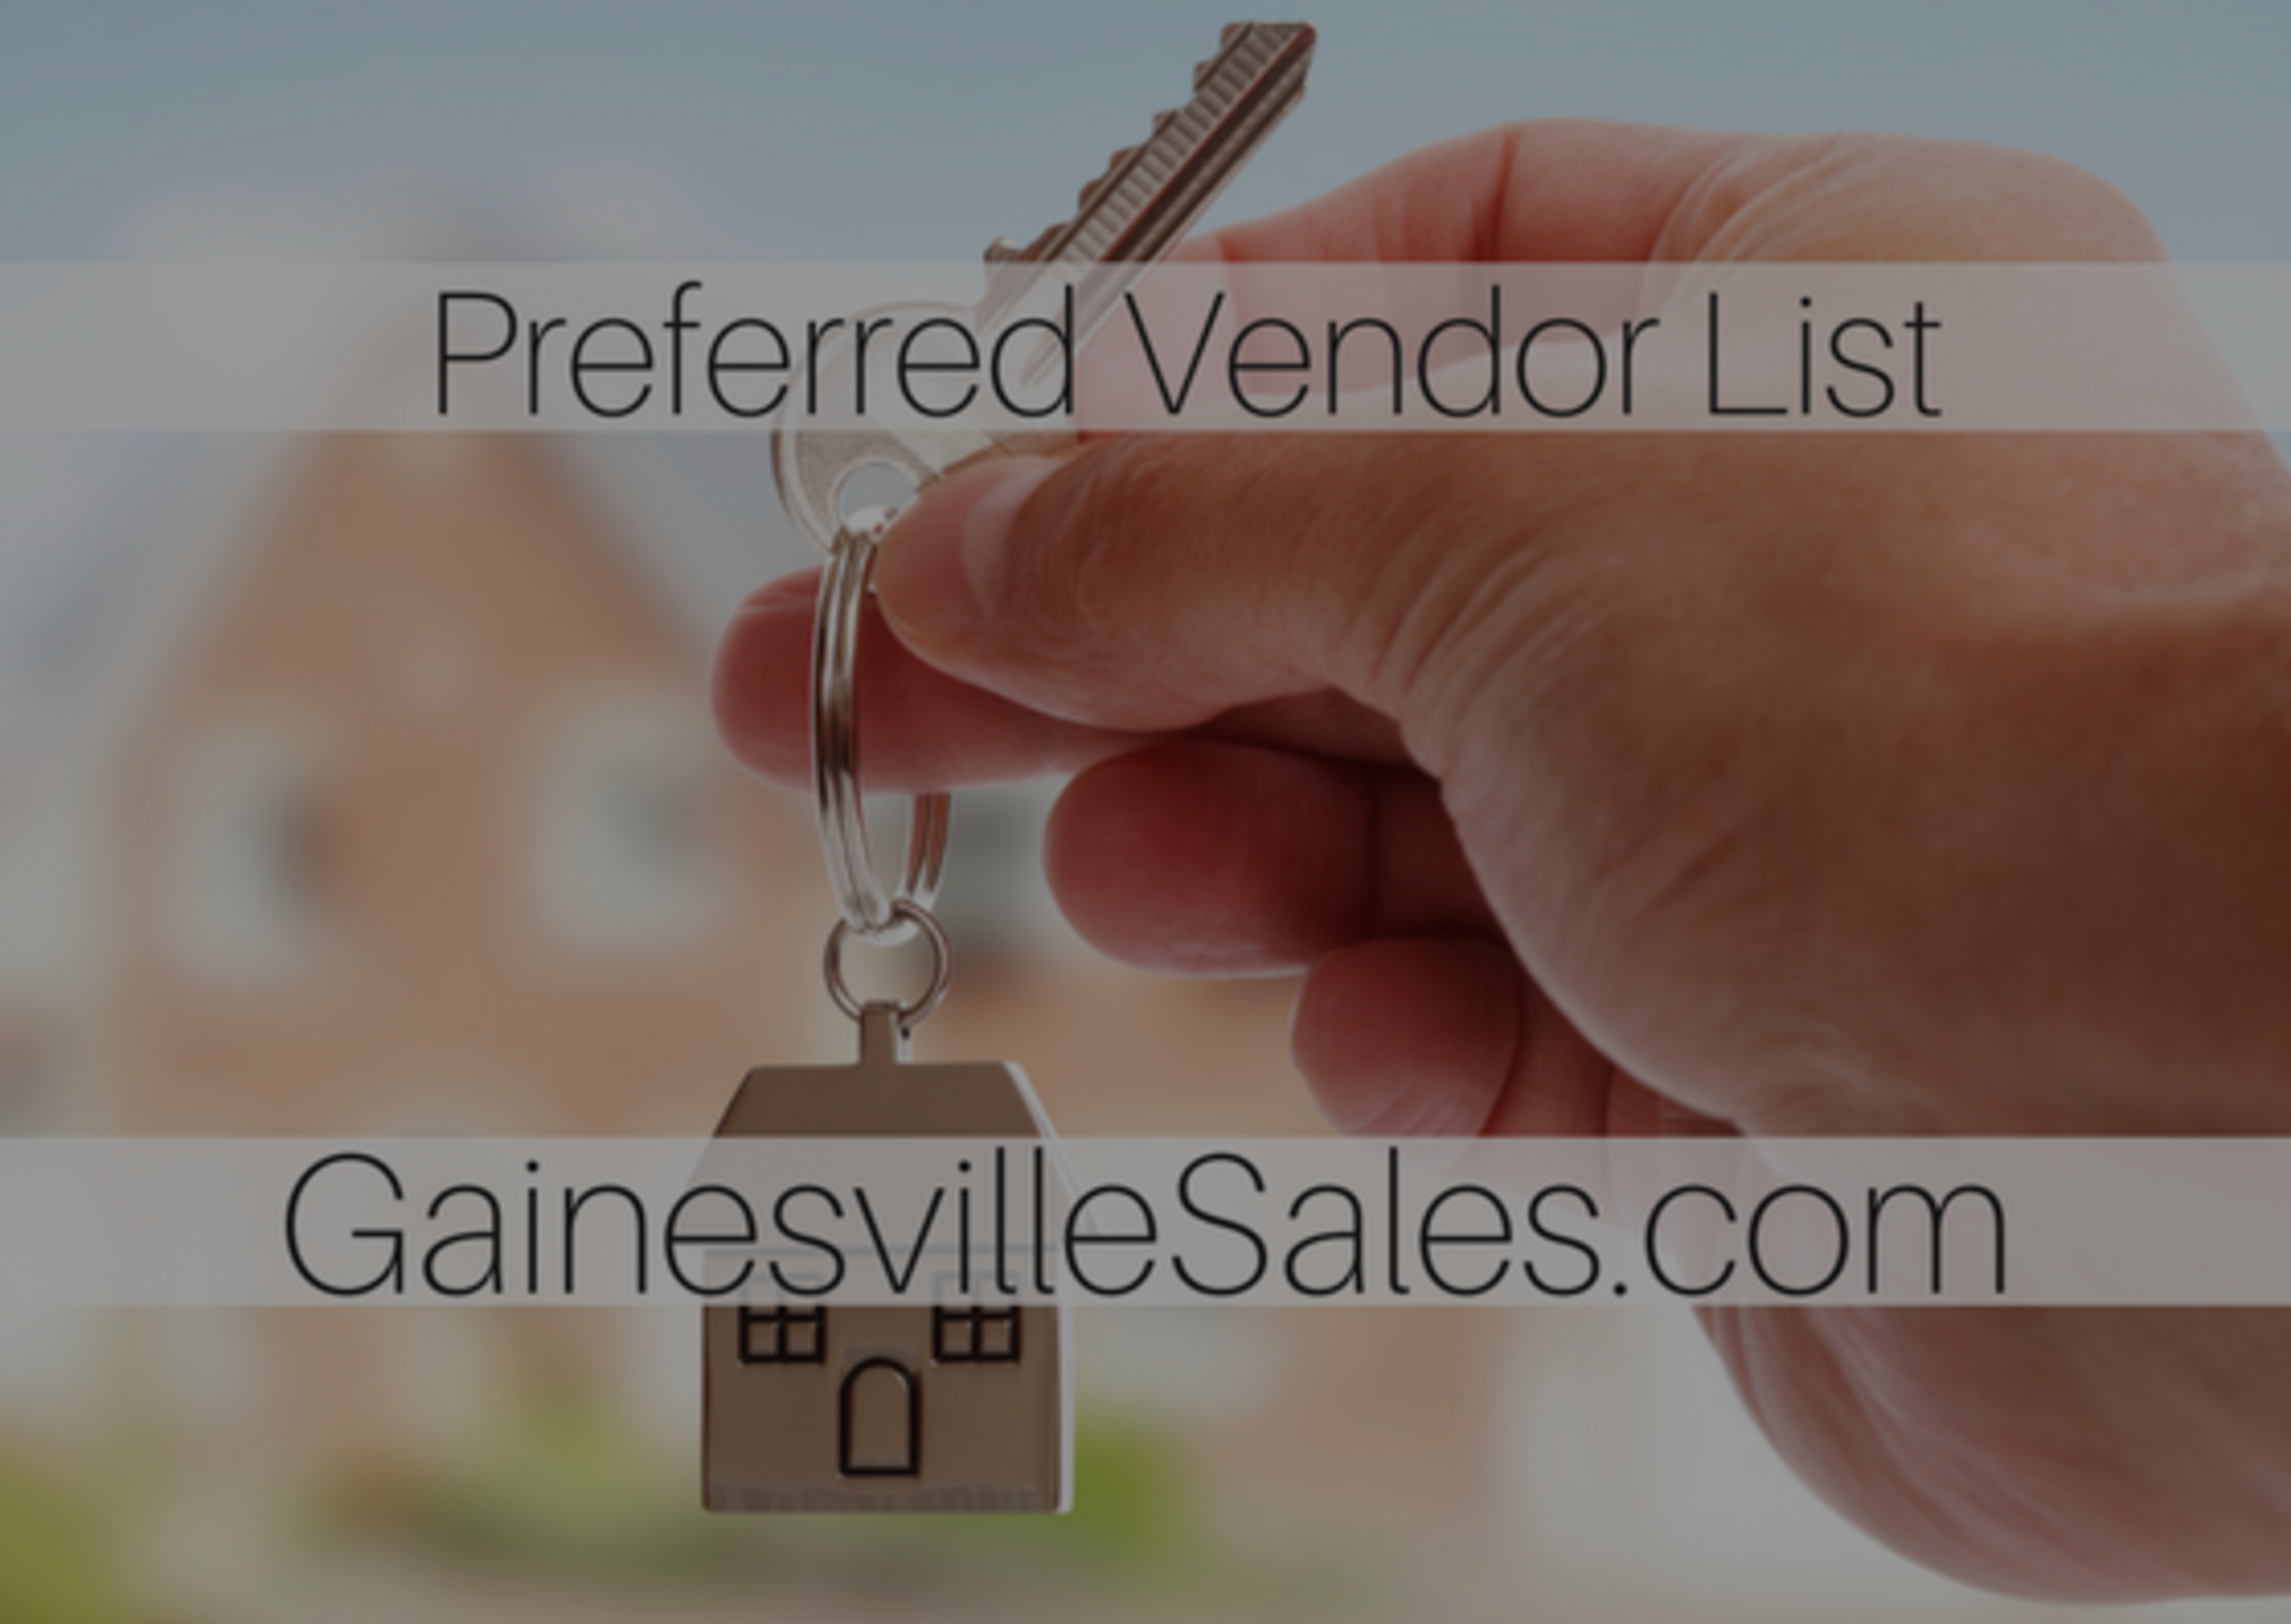 The Gainesville Sales Preferred Vendors